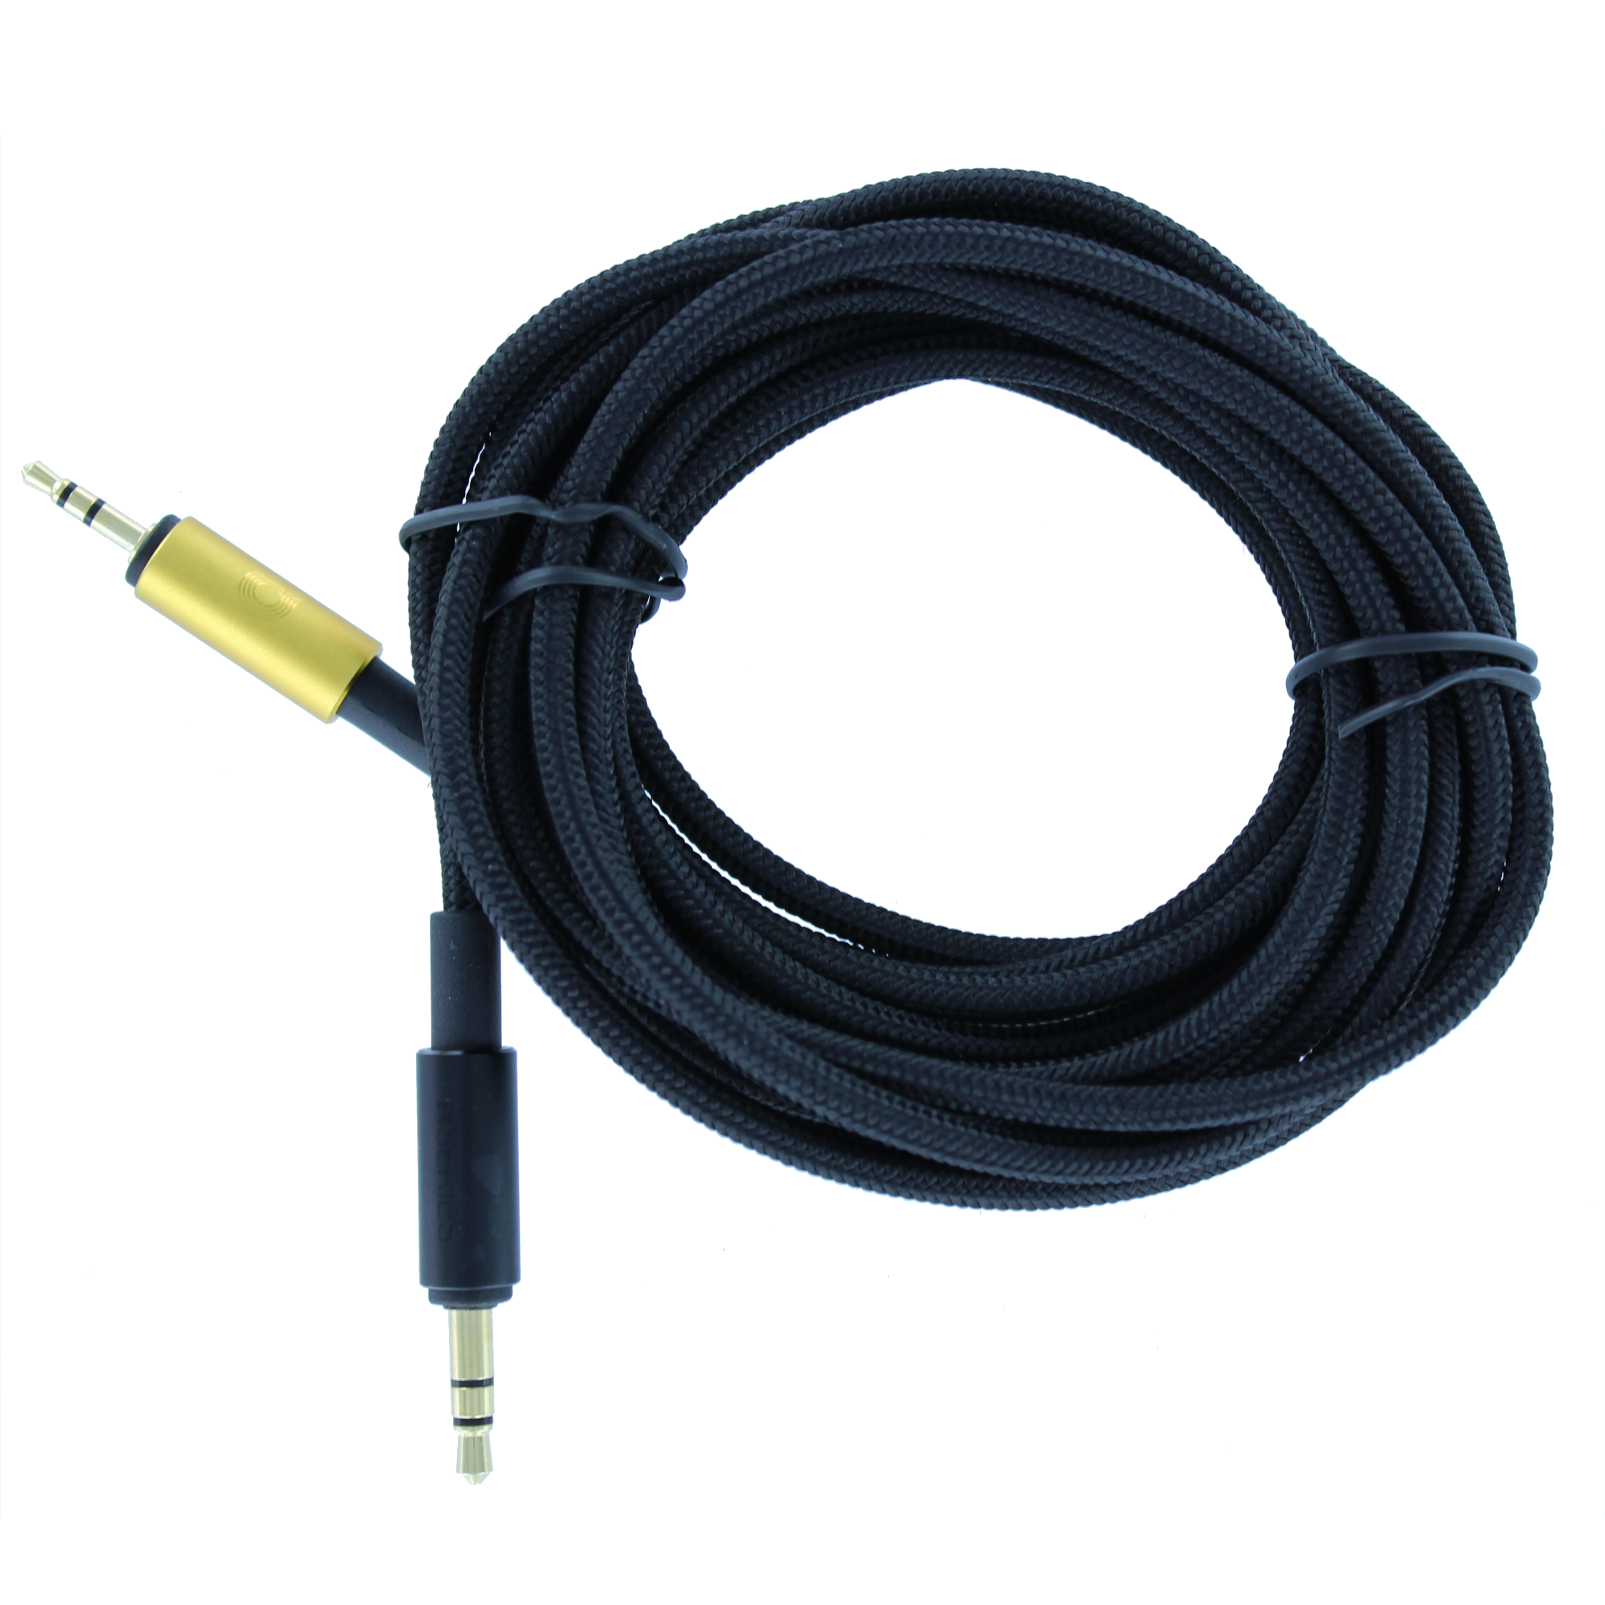 AKG Audio cable straight for N90 - Black - Audio cable 300 cm - Hero